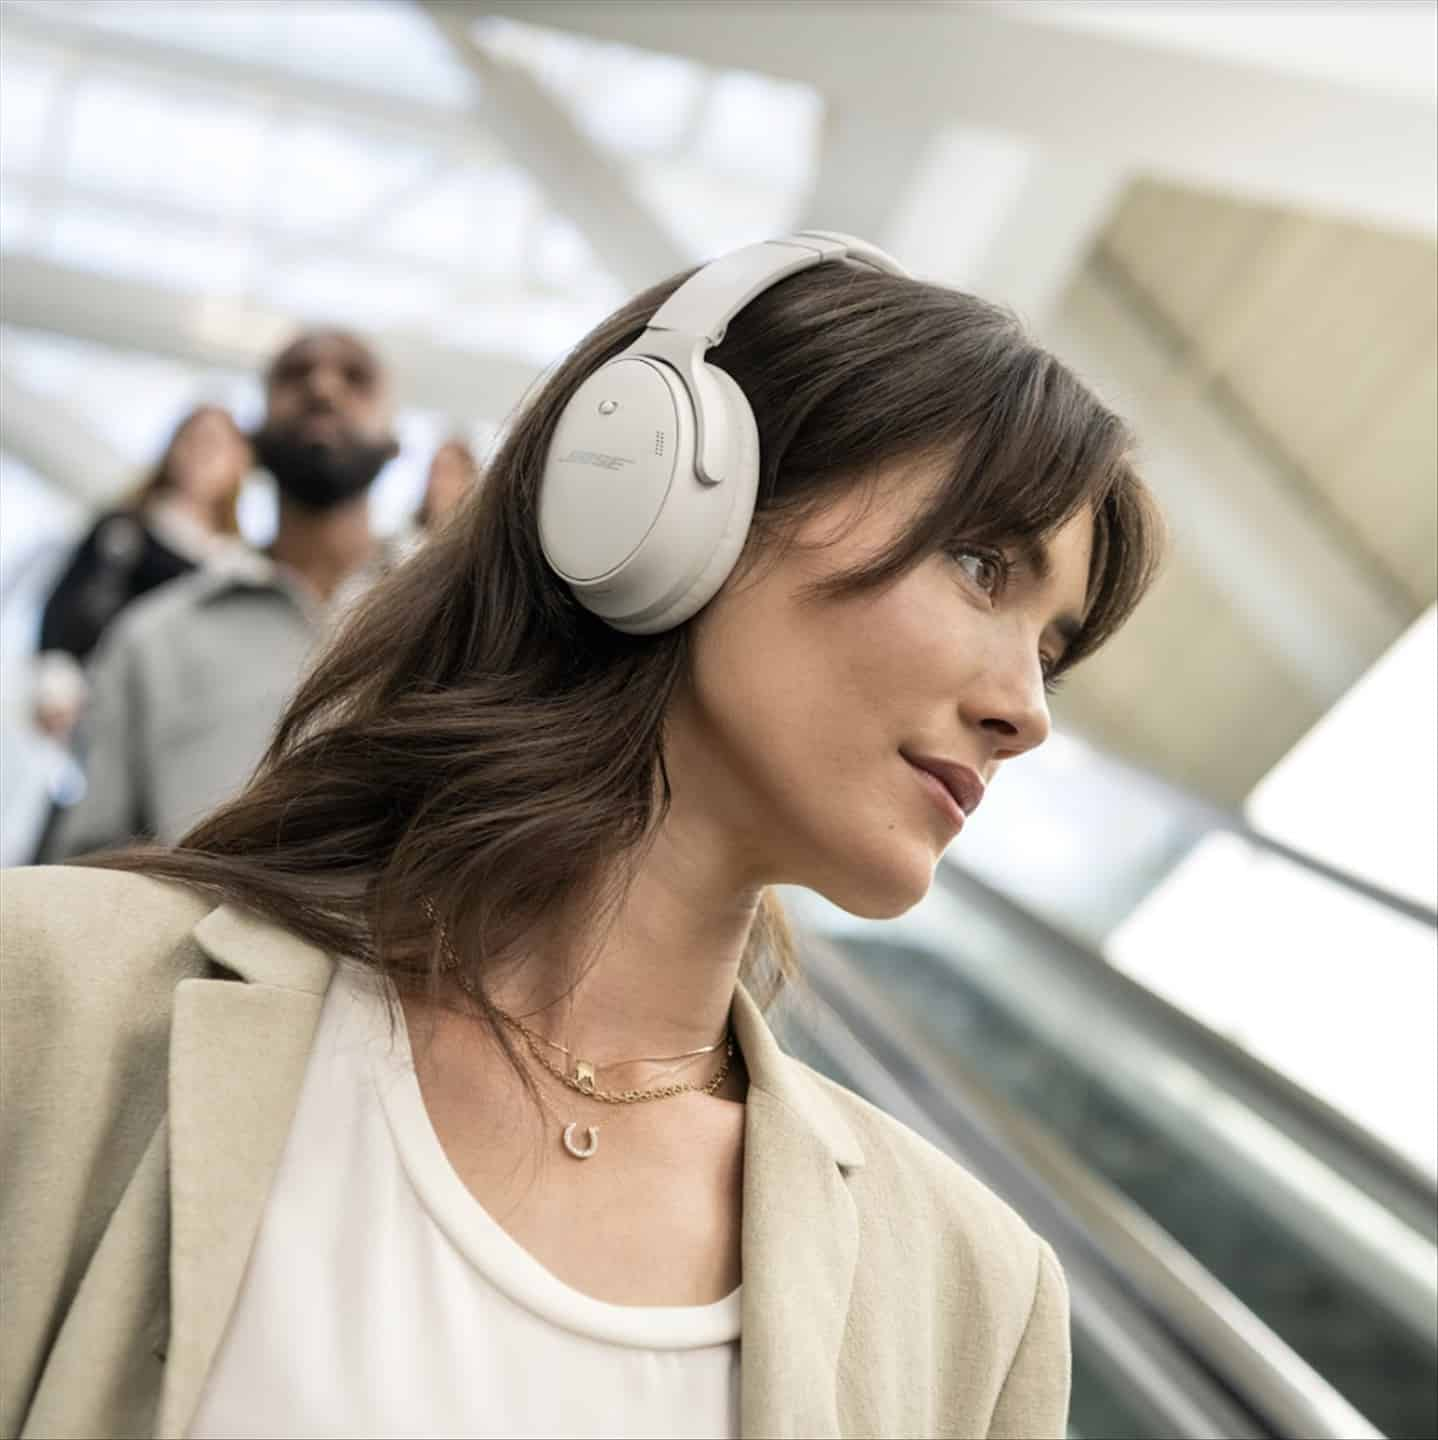 Bose announced an update to their ANC headphones' QuietComfort line with QuietComfort 45